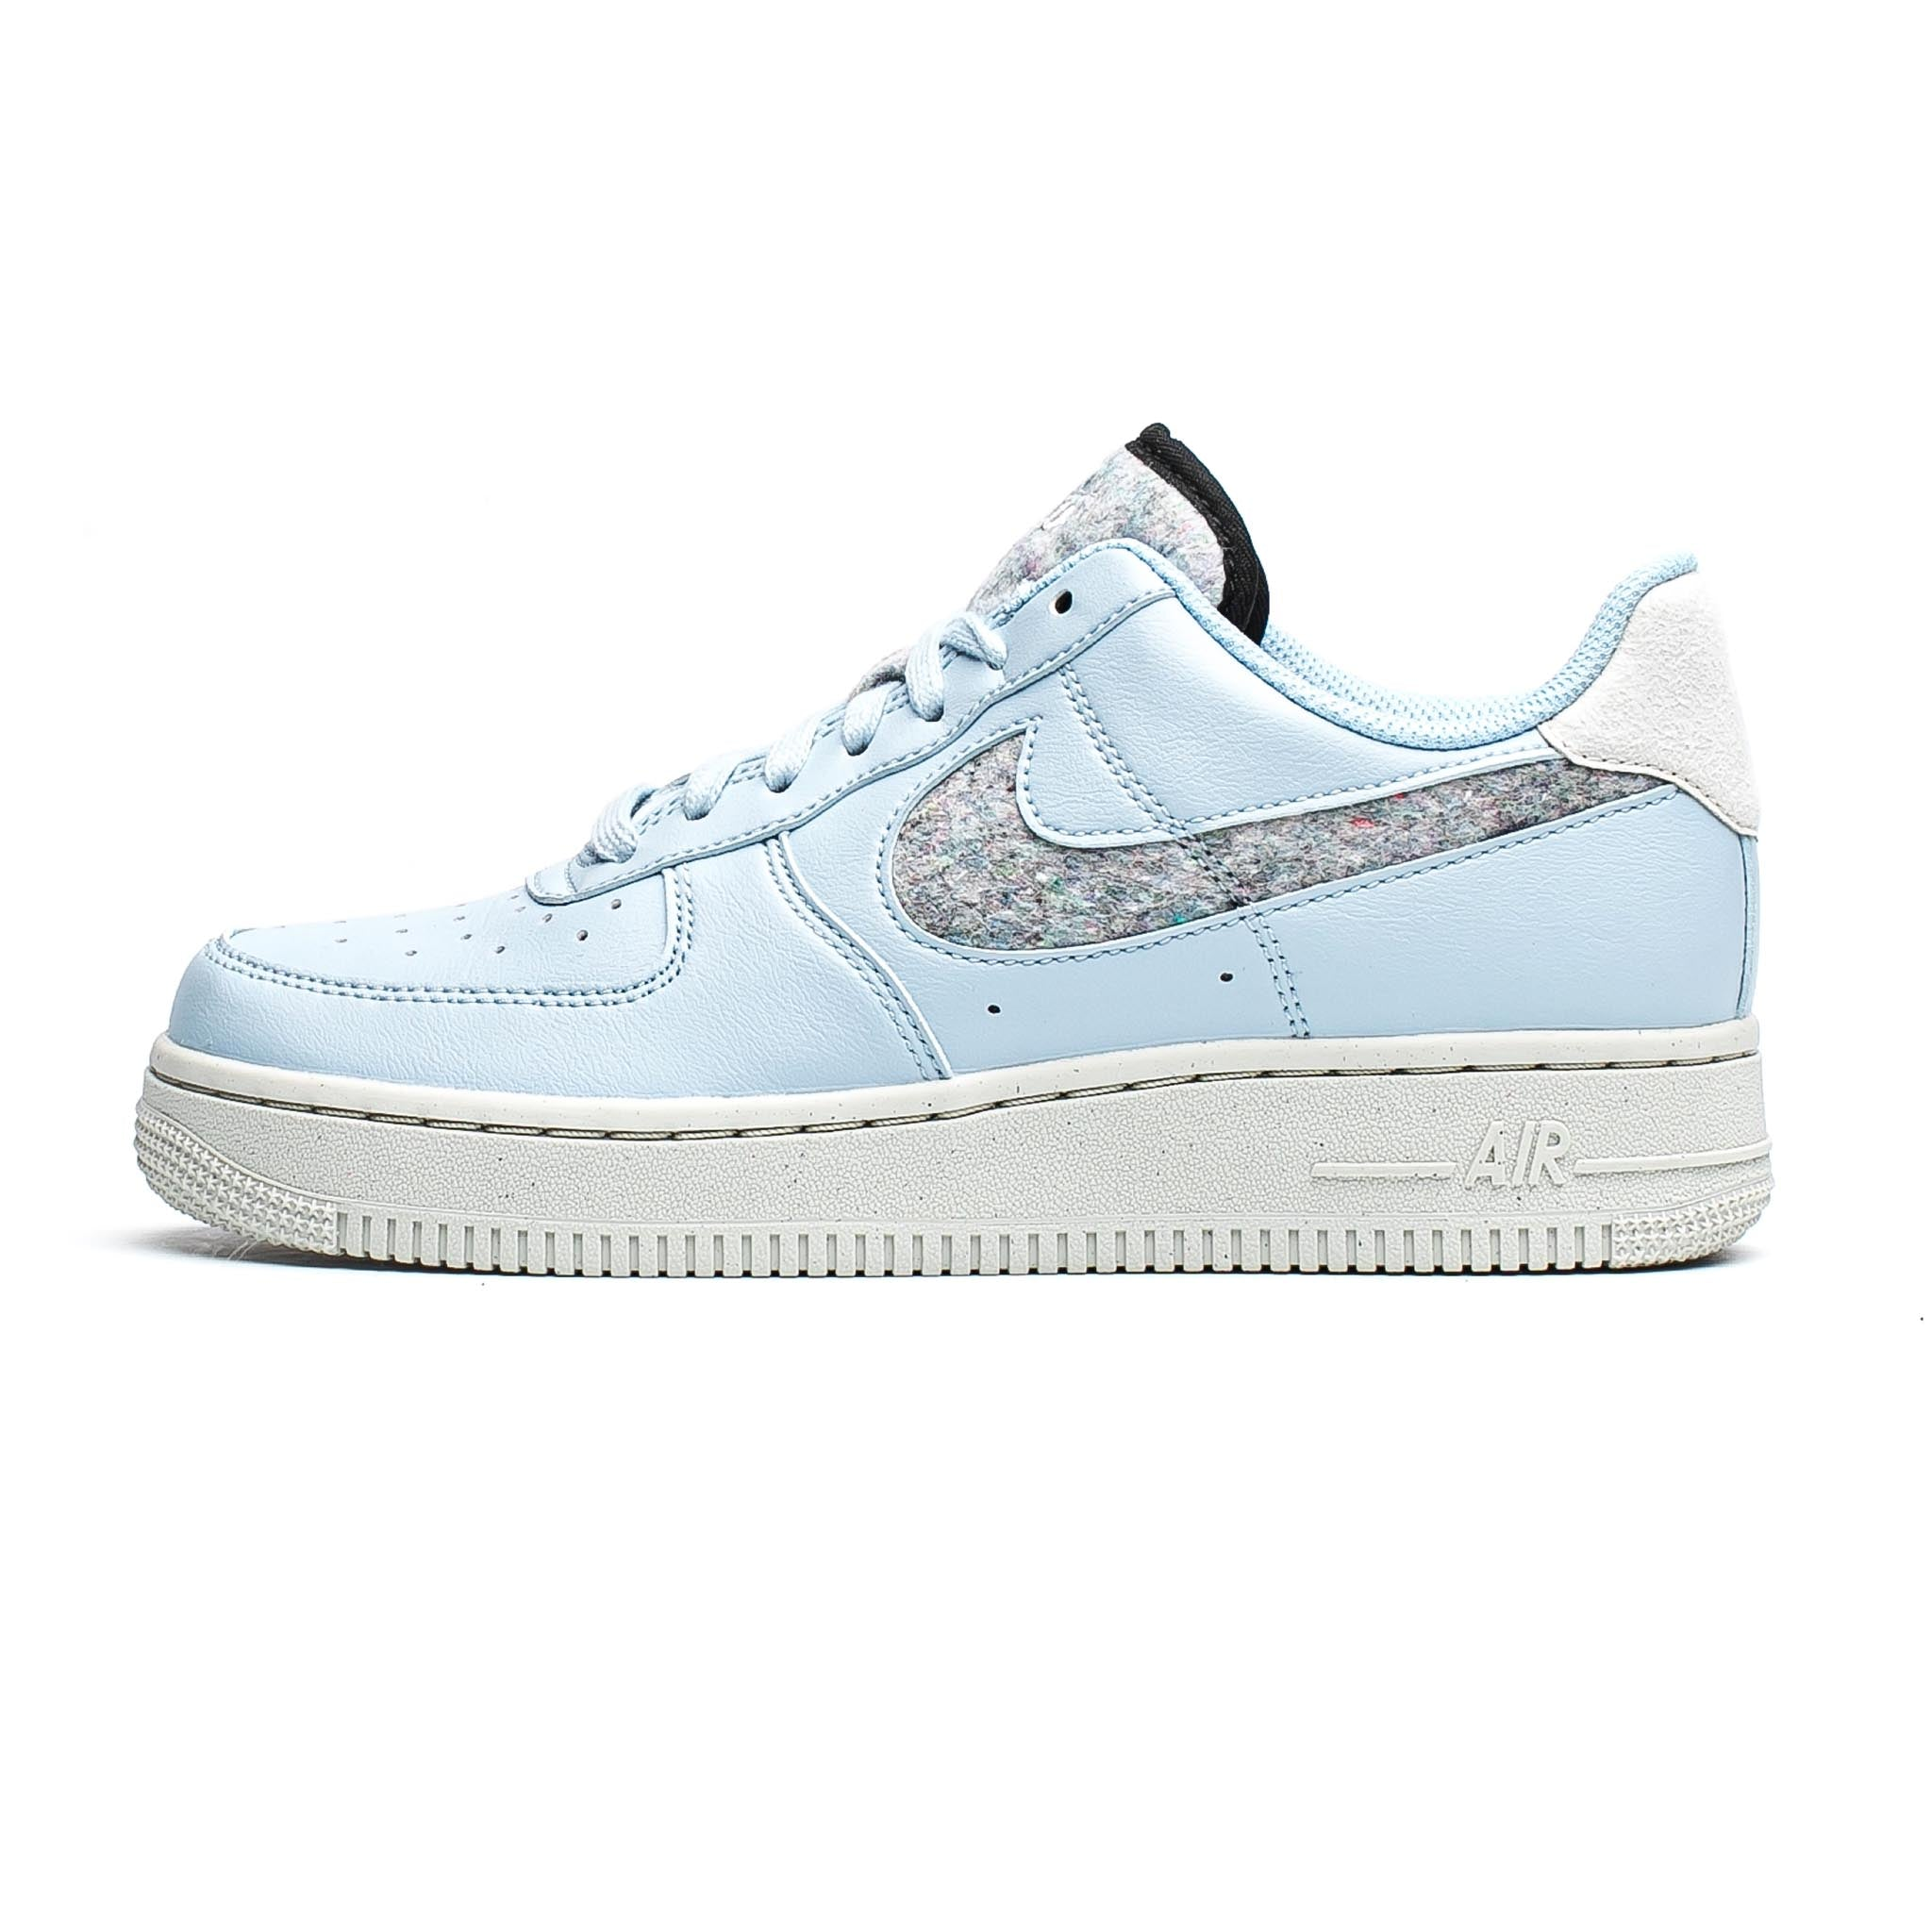 Nike Air Force 1 '07 SE 'Recycled Wool' Light Armory Blue